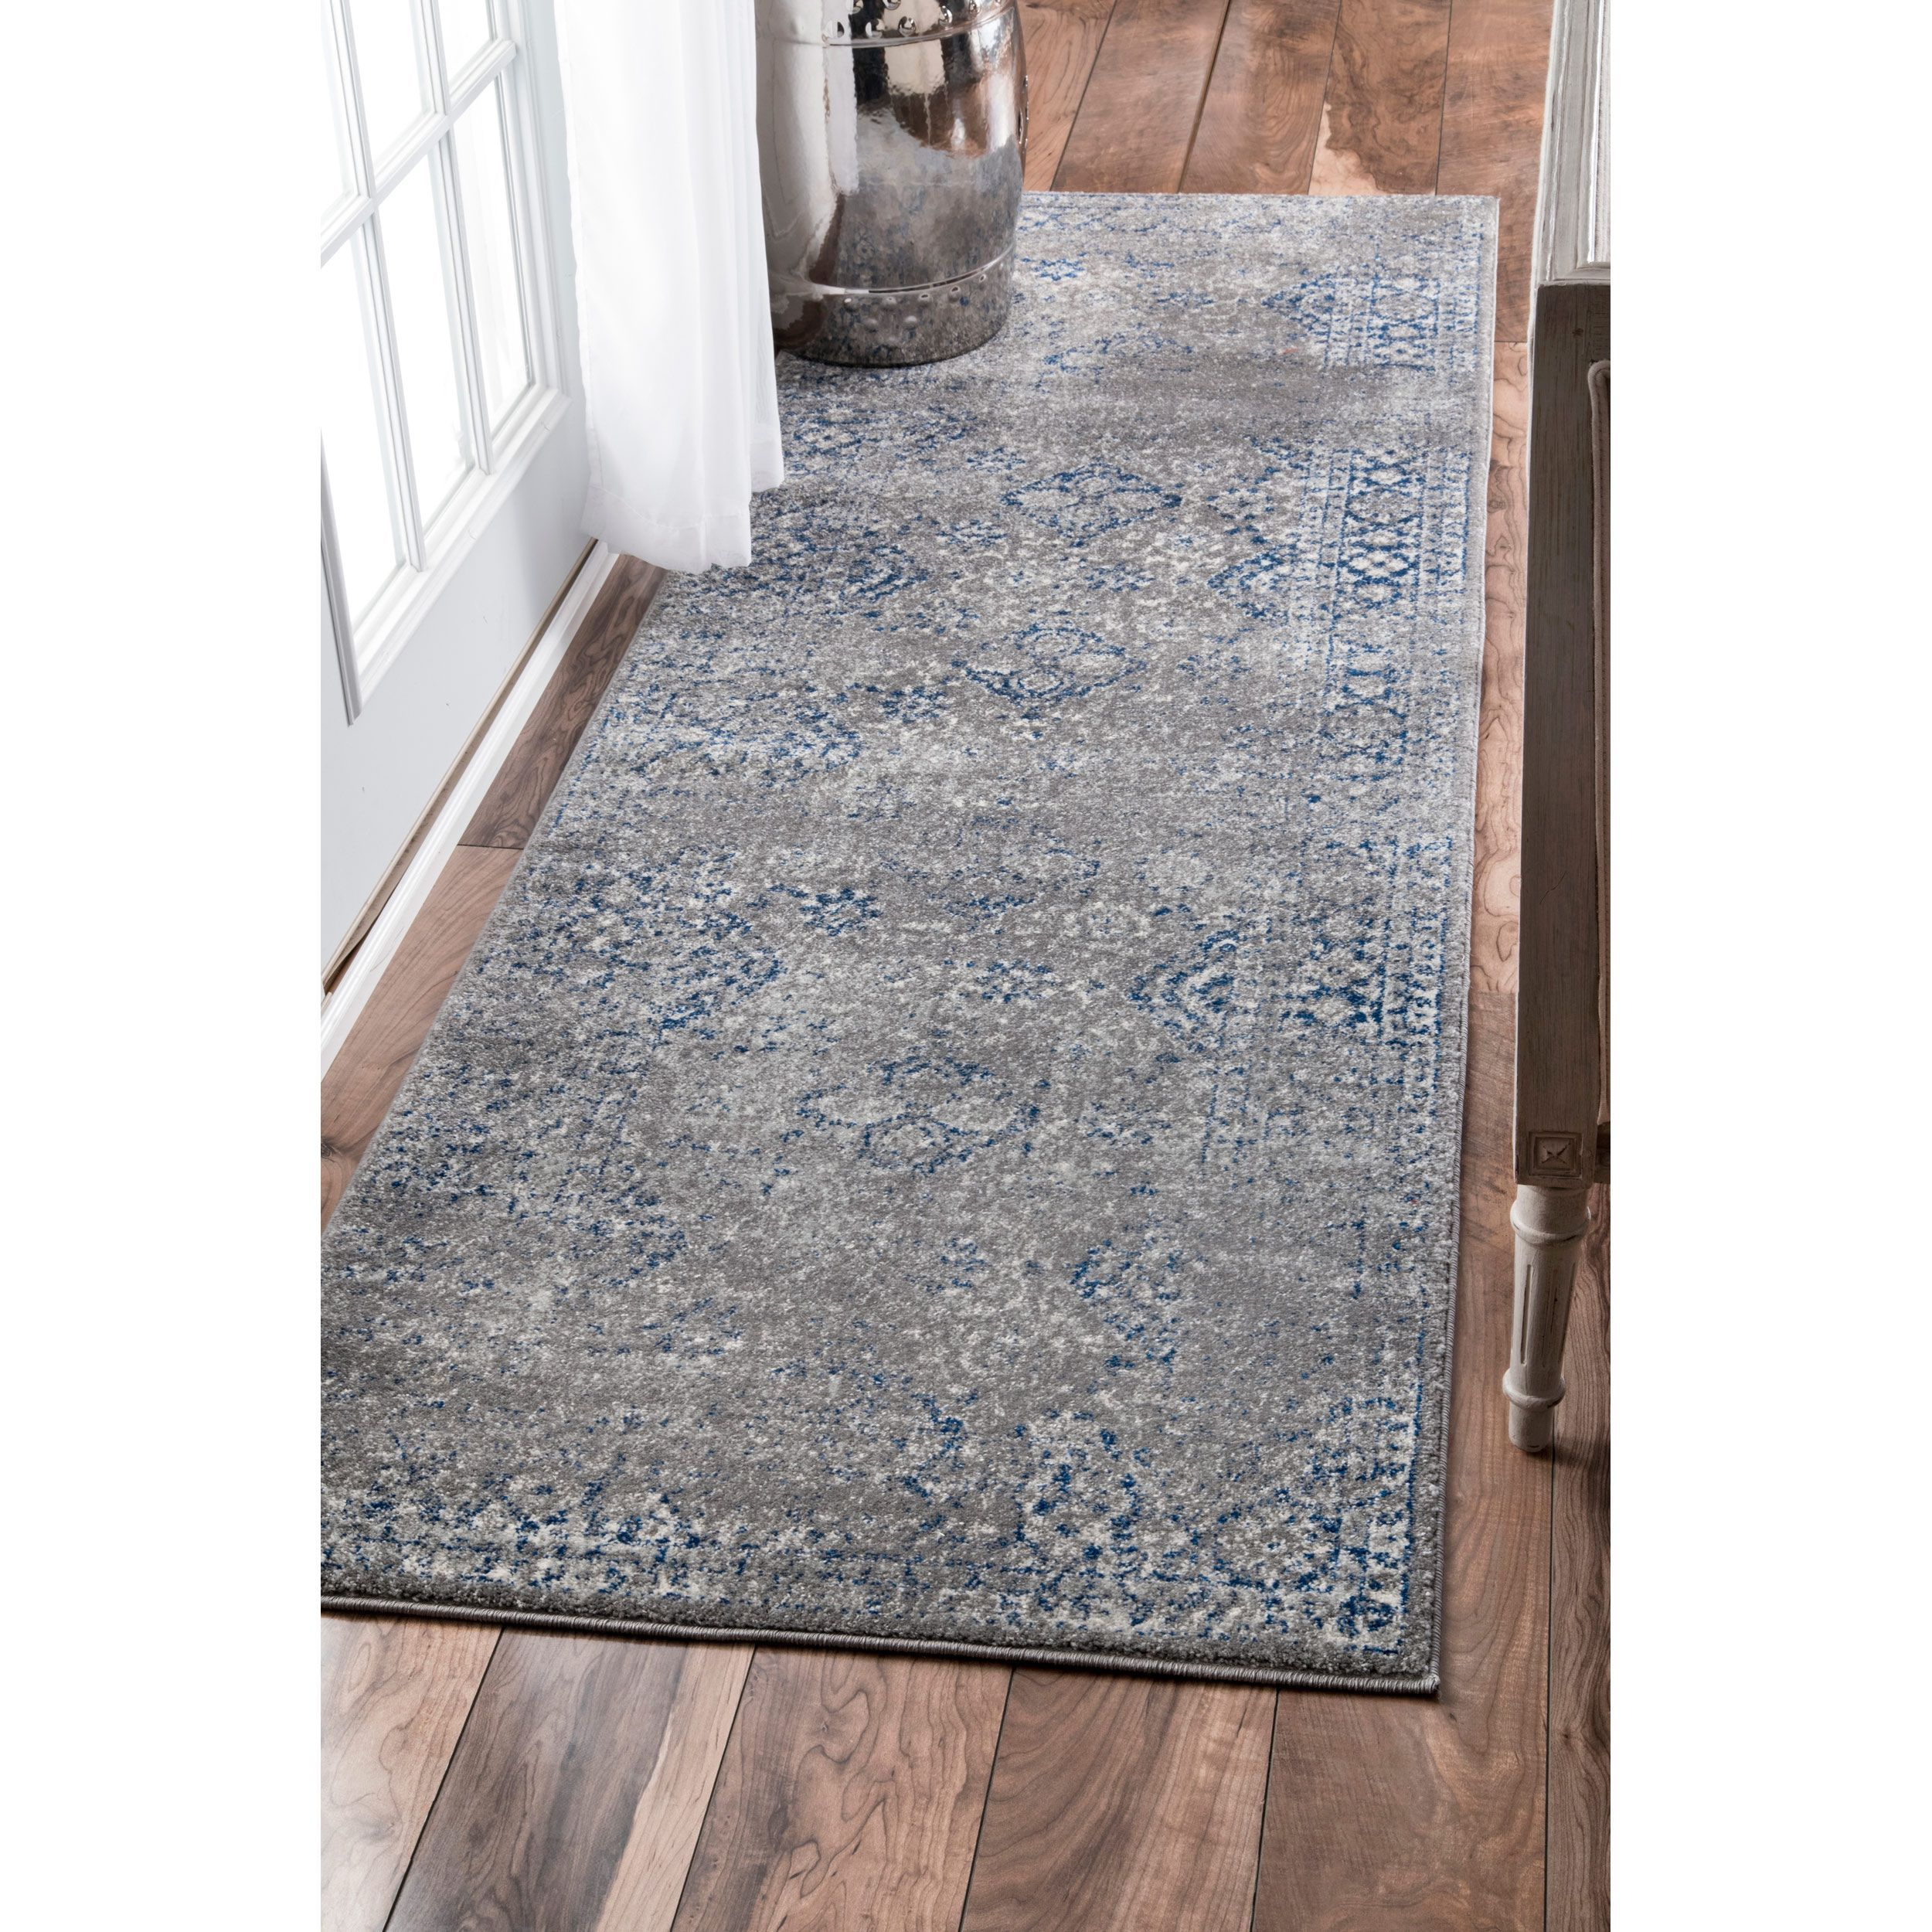 Contemporary Wool Area Rugs Add Depth Warmth And Beautiful Pops Of Color In Every Room It S Easy To Get A Few Ideas For Placing Your Kitchen